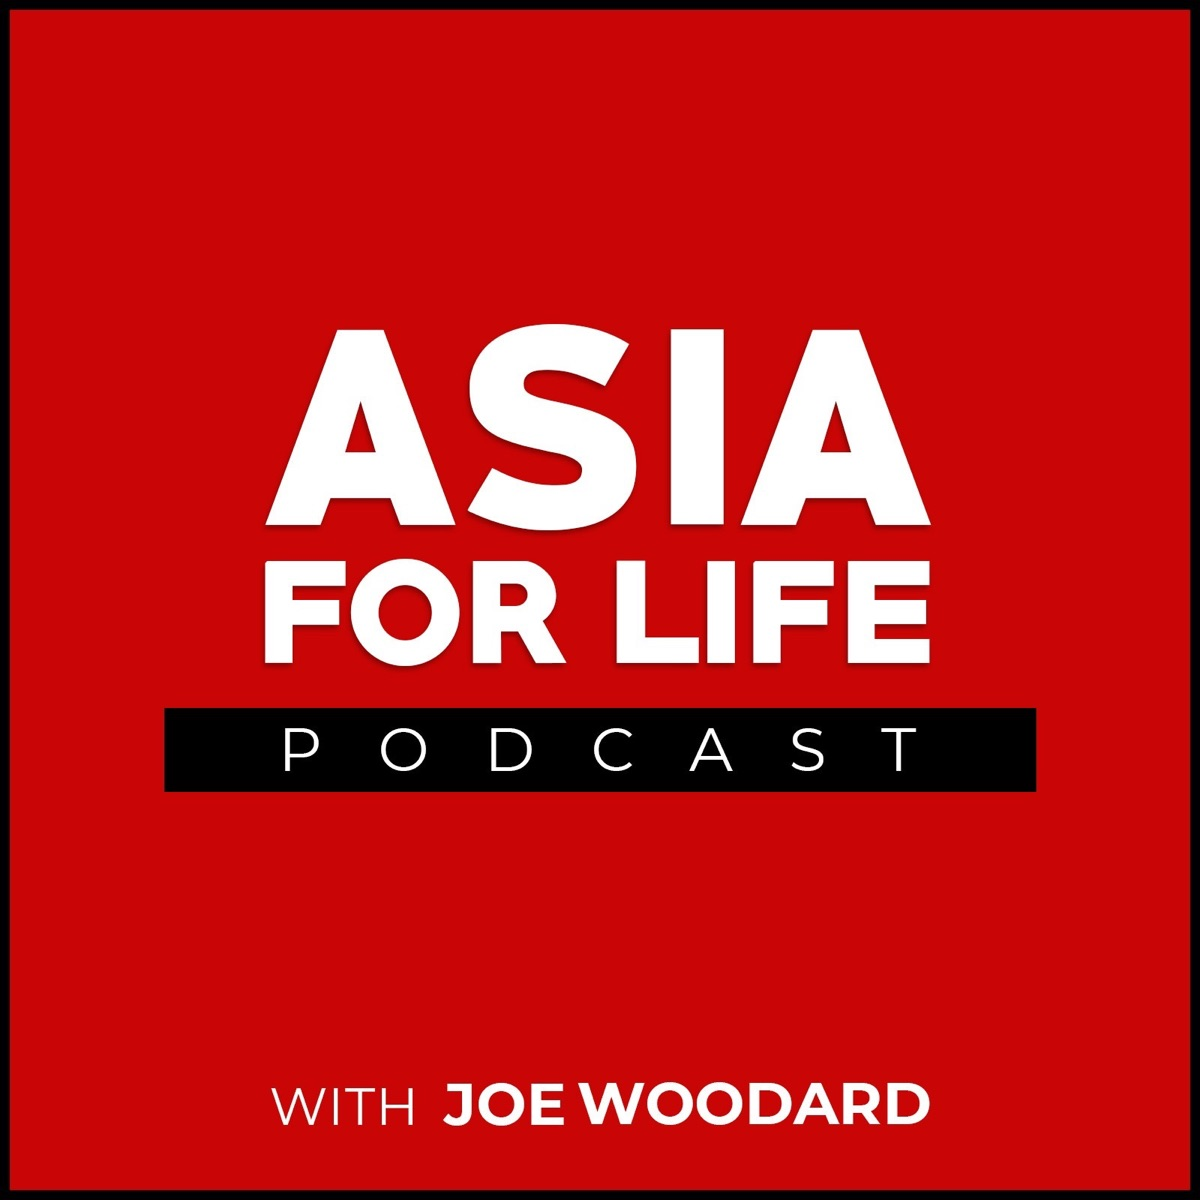 Asia for Life